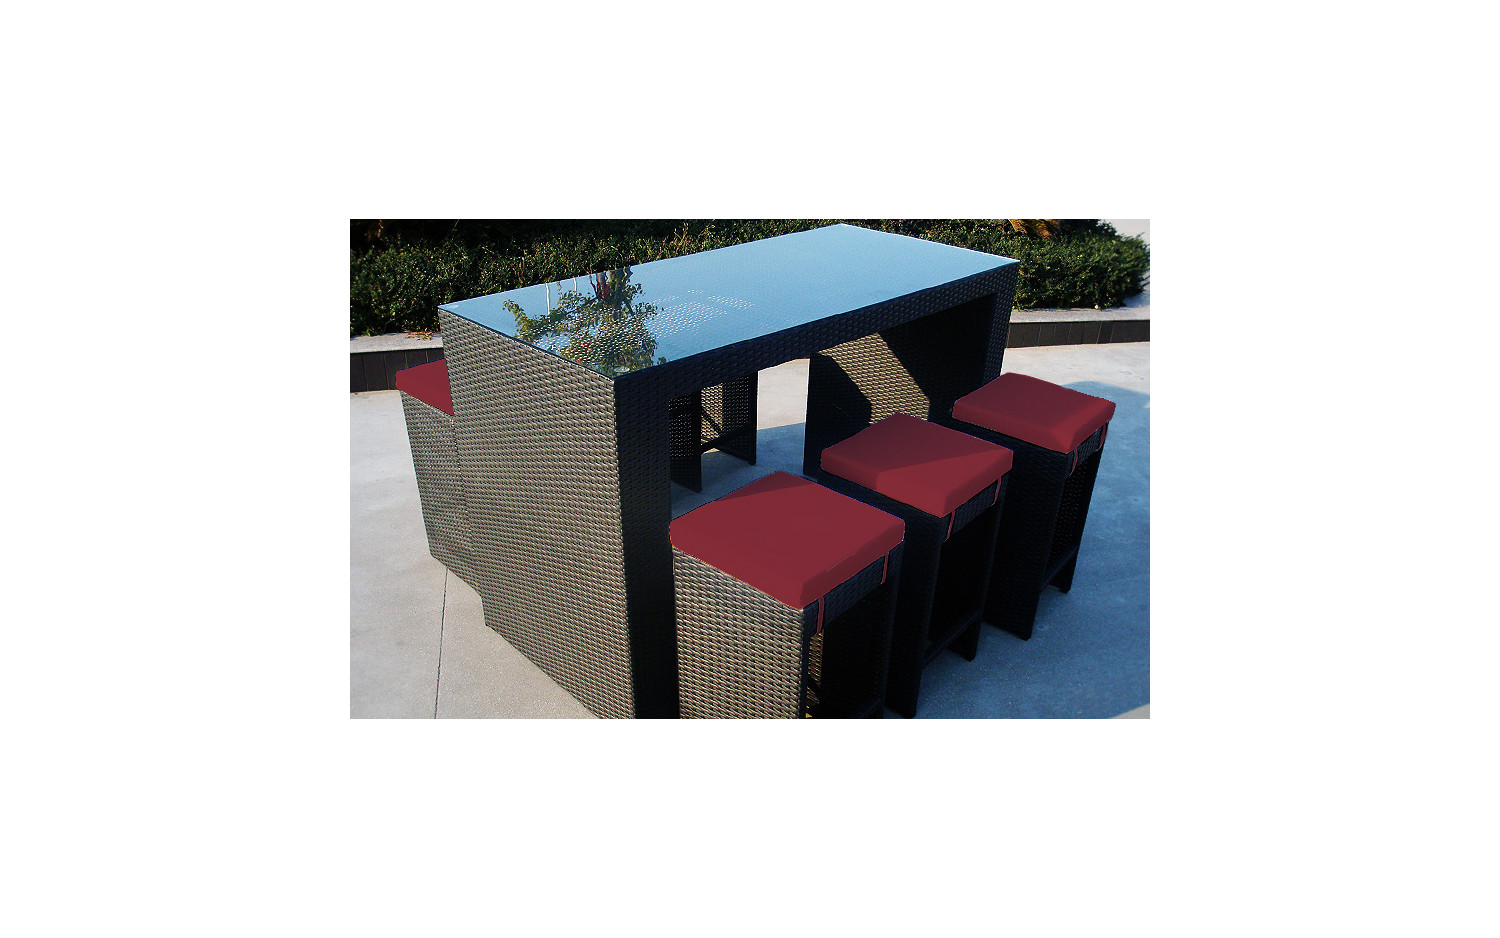 baidani rattan garten sitzgruppe summernight select baidani shop. Black Bedroom Furniture Sets. Home Design Ideas